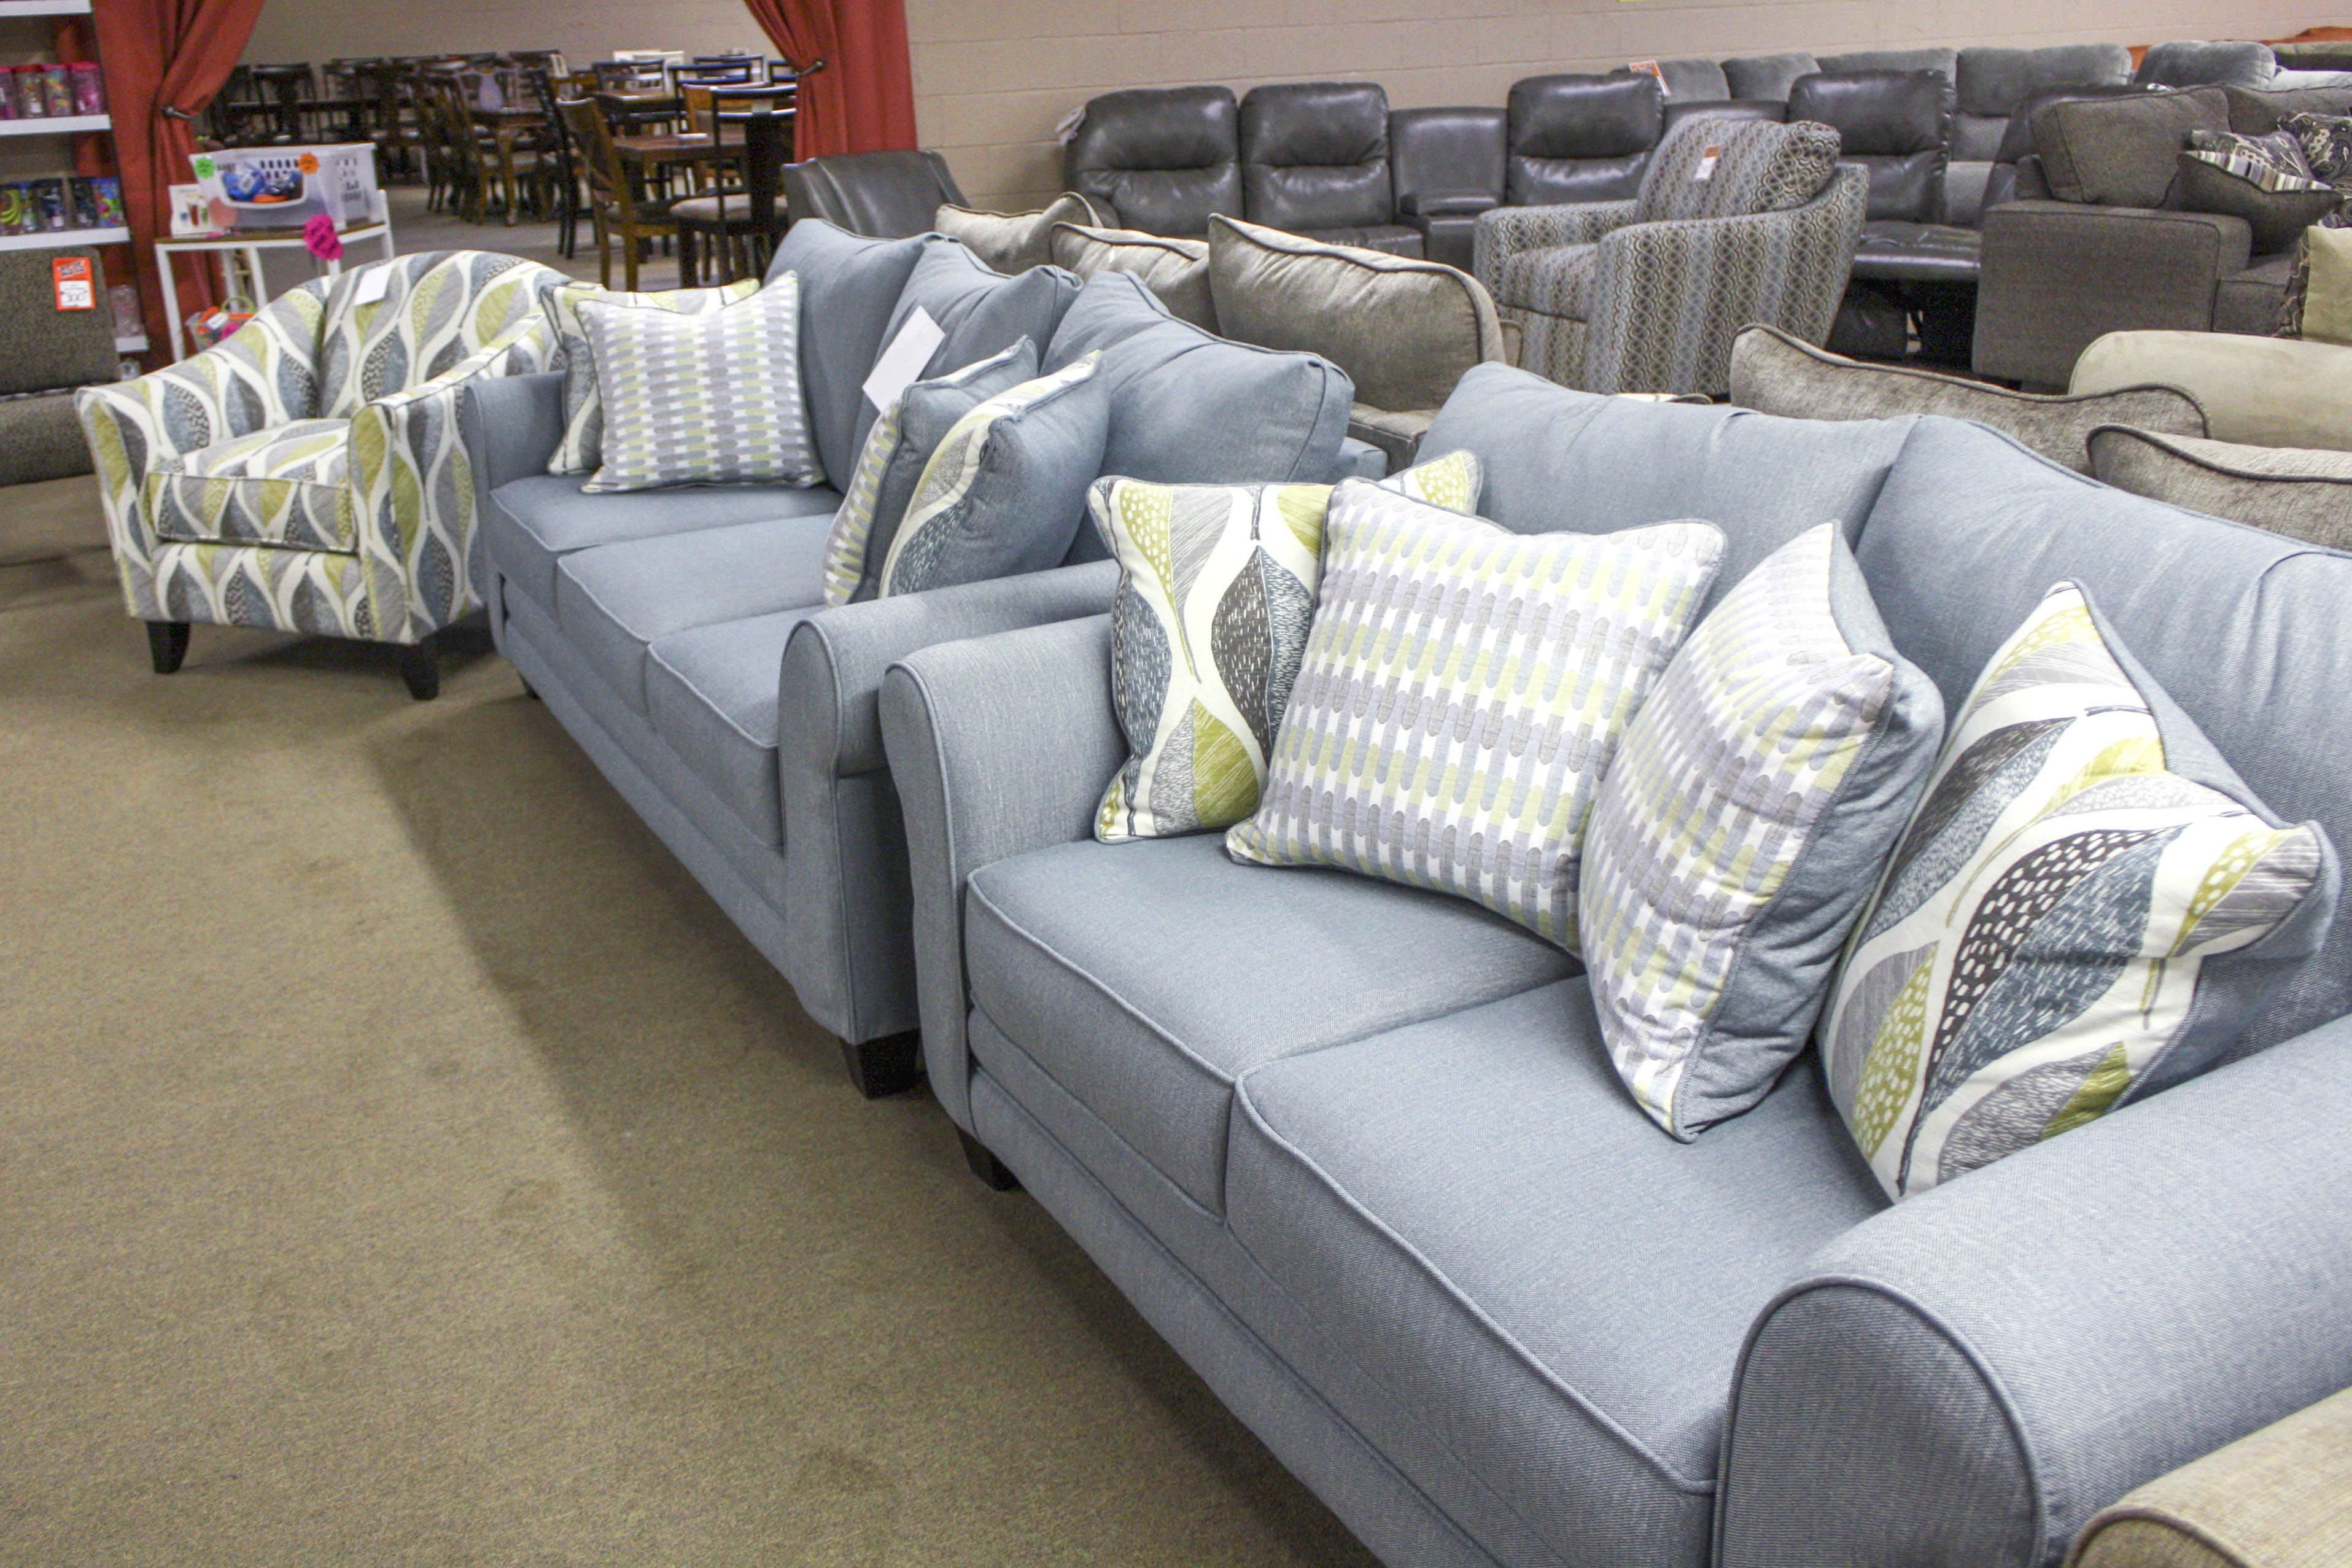 Light Blue Couch Pillows Blue Couch Pillows Light Blue Couches Light Blue Pillows